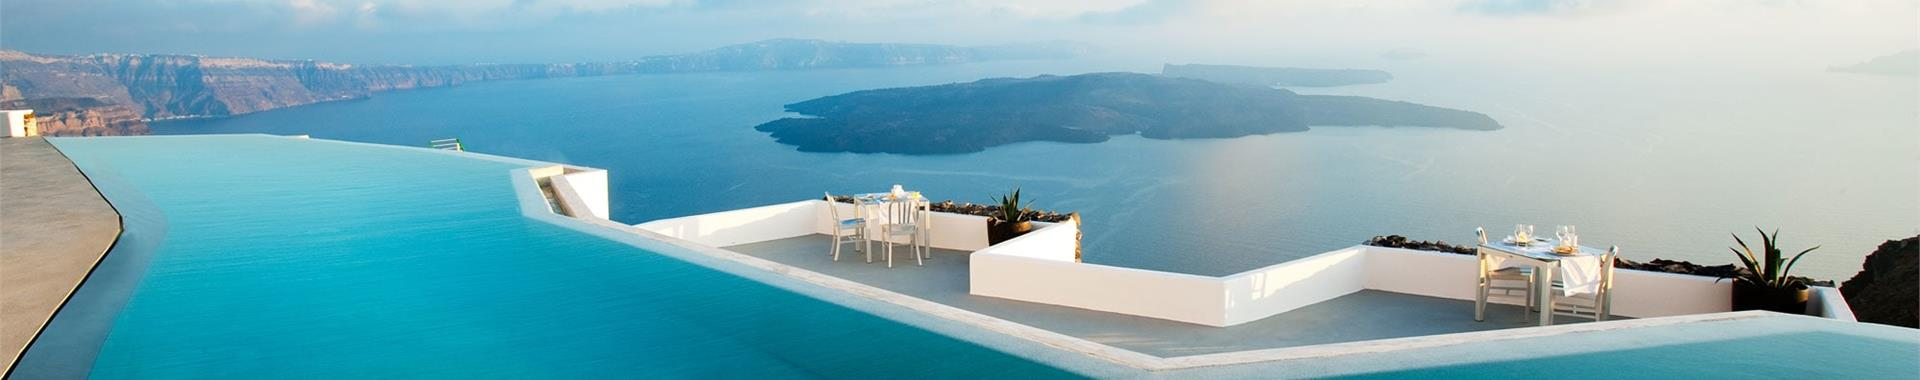 Santorini Hotels on the Caldera